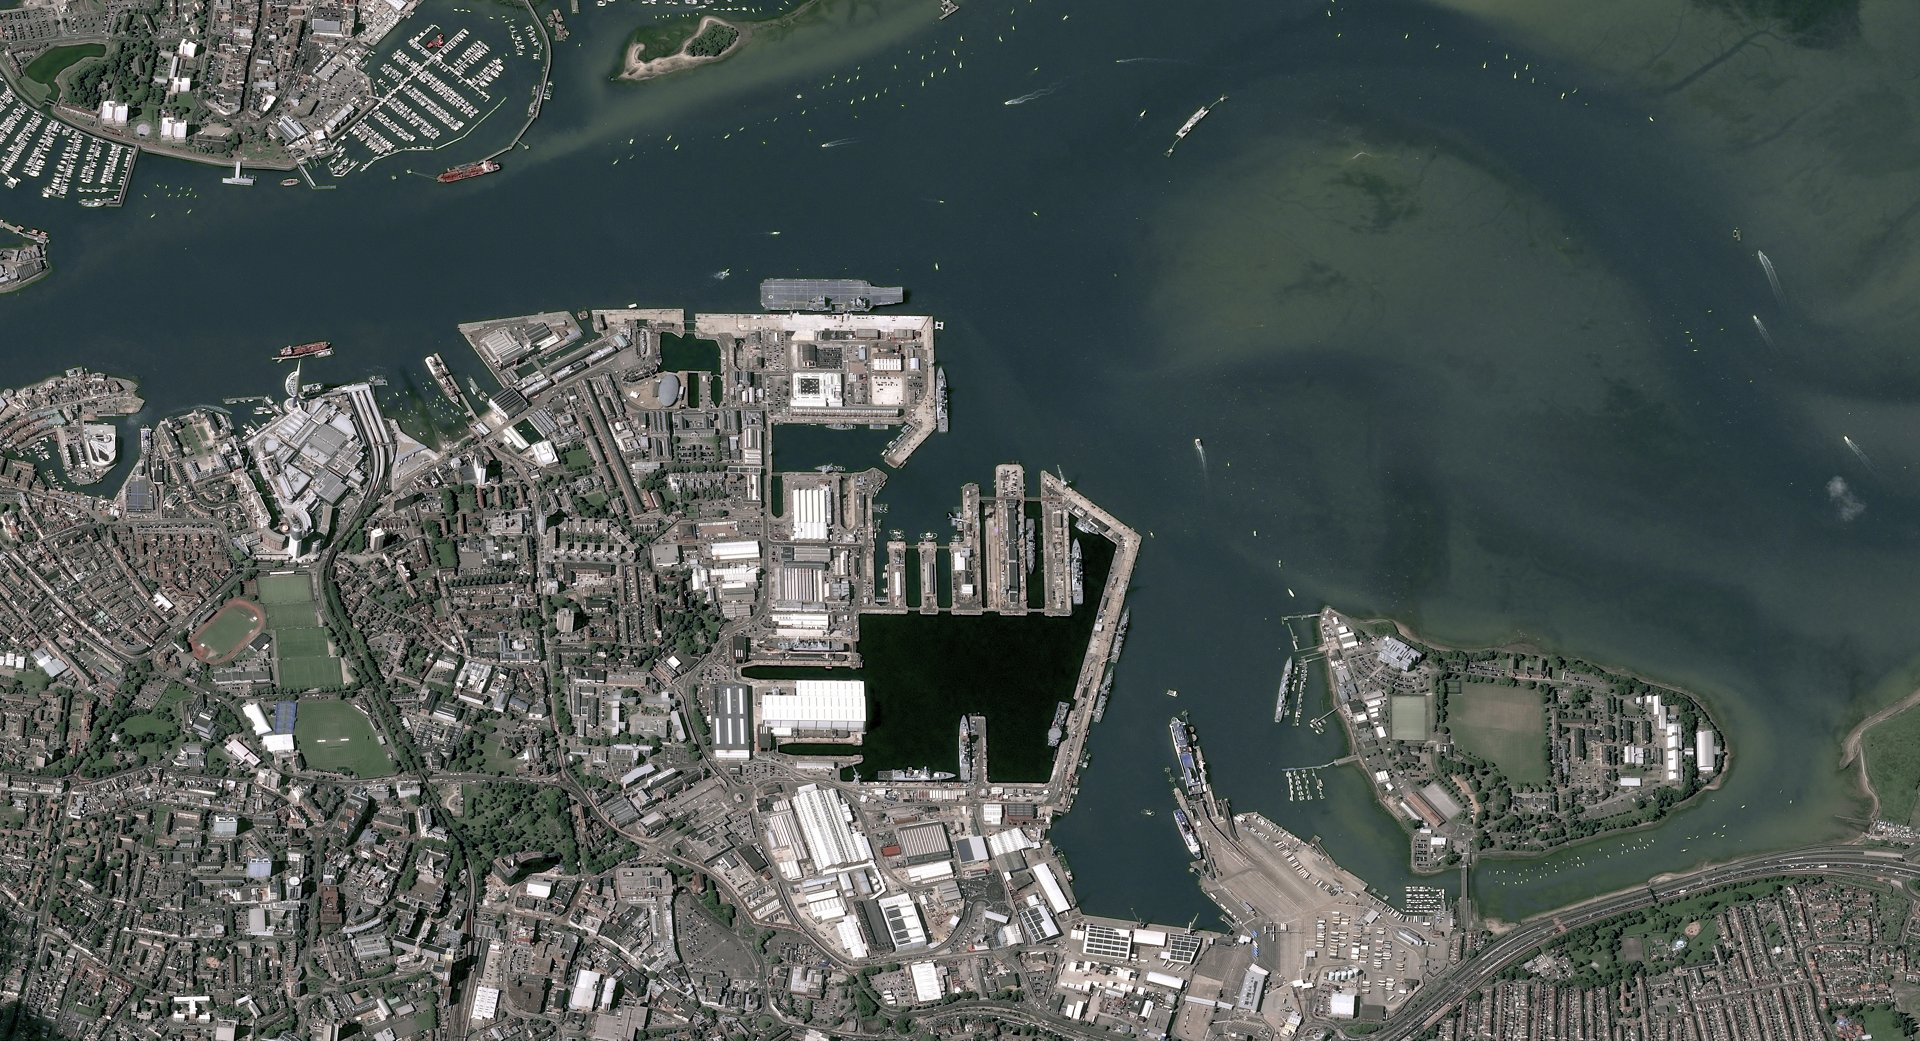 Image acquired by Pléiades satellite on August 18th, 2017, in Portsmouth, UK.